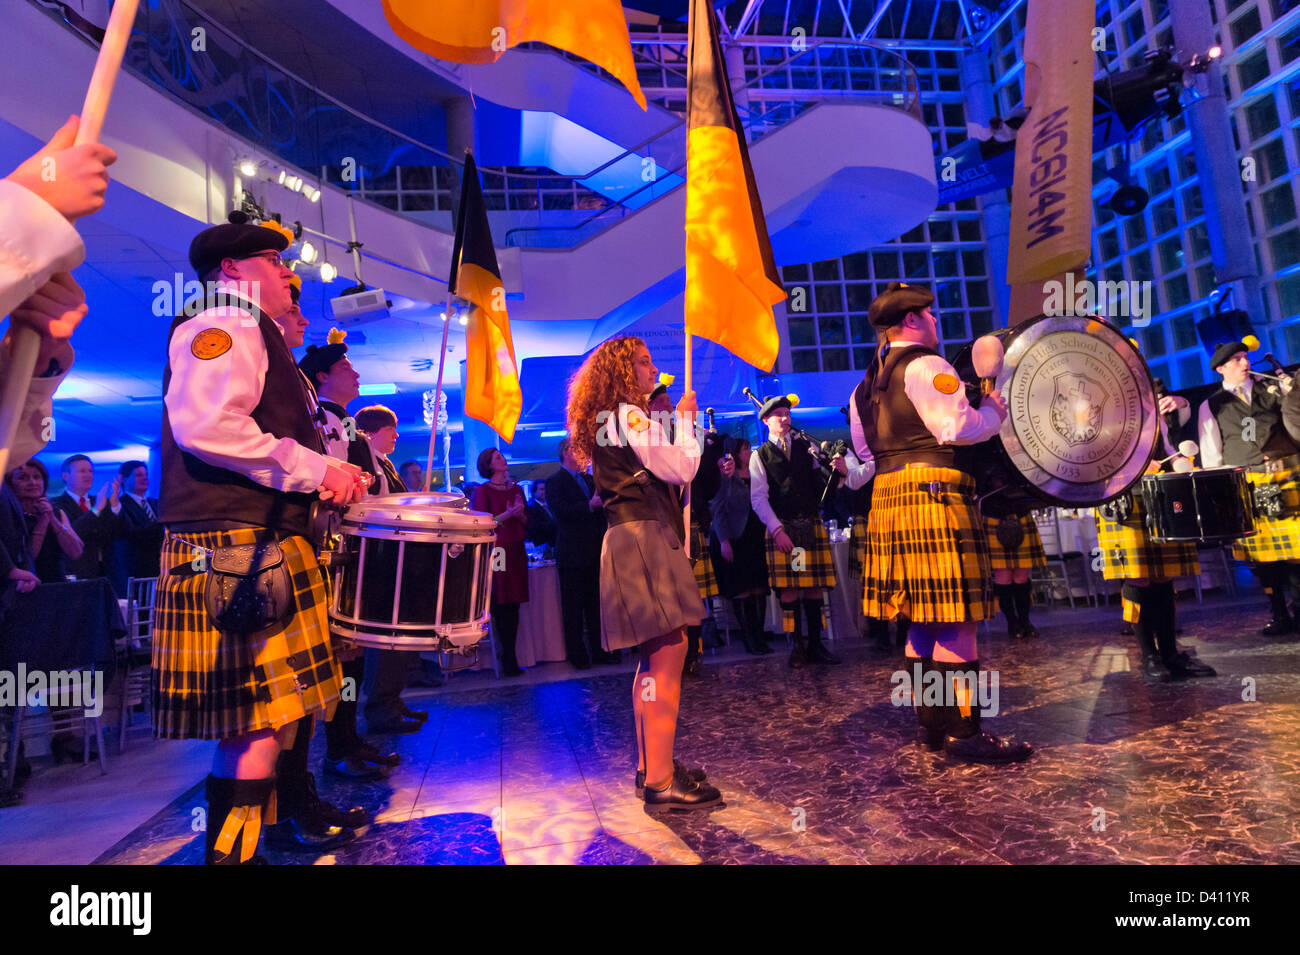 Feb. 27, 2013 - Garden City, New York, U.S. - St. Anthony's HS 'Celtic Friars' Pipe Band, from South - Stock Image